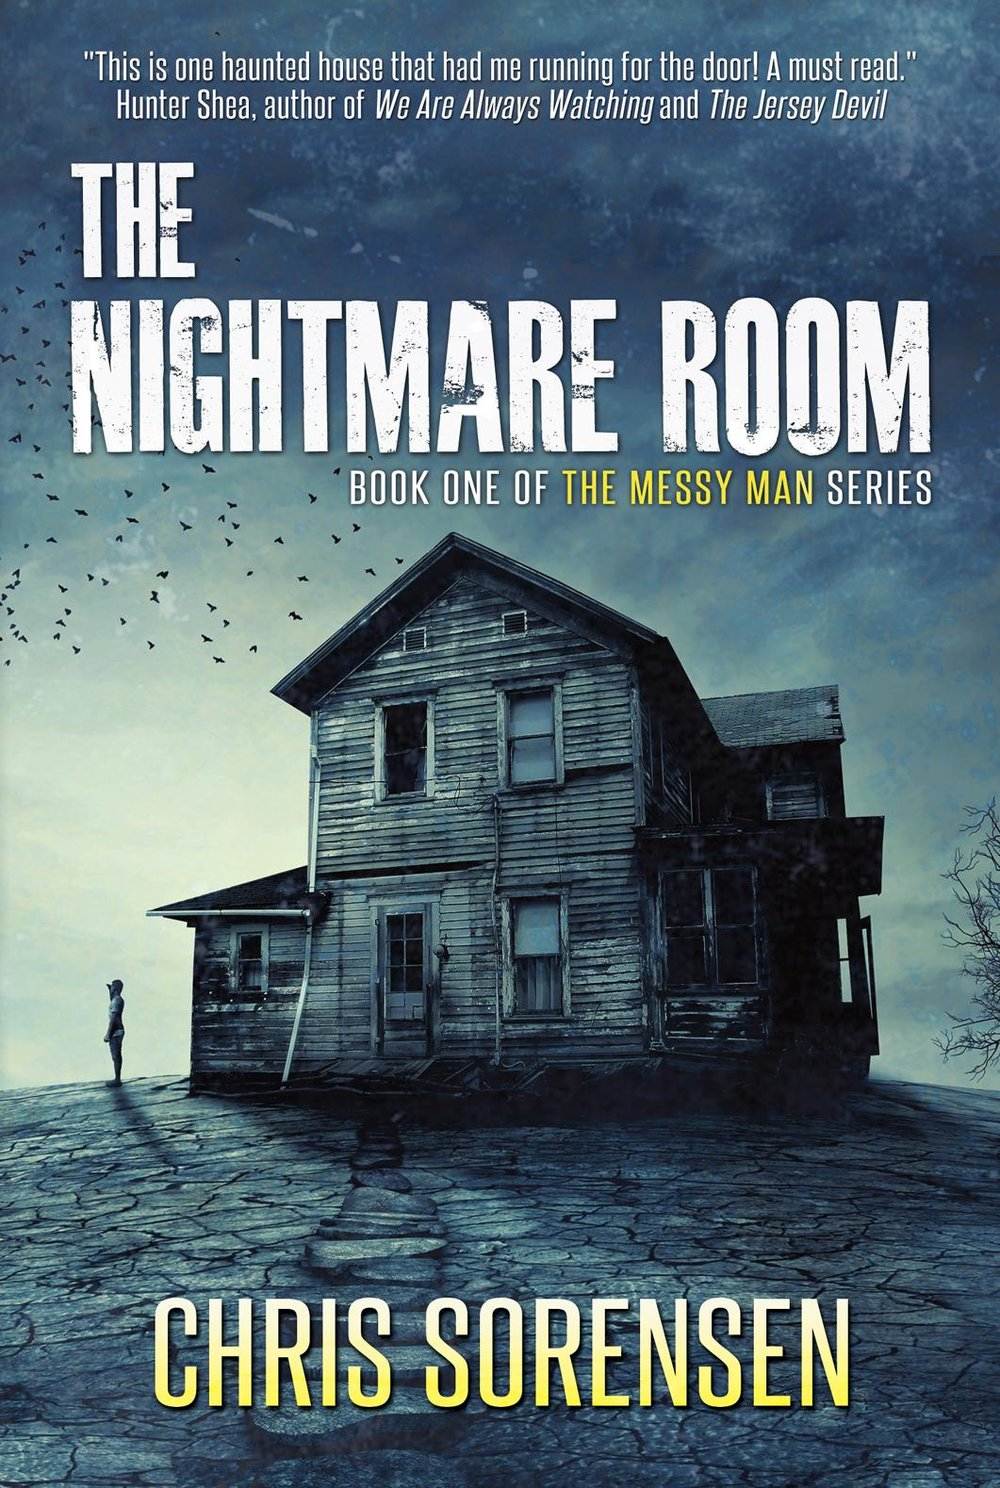 The Nightmare Room - Chris Sorensen.jpeg